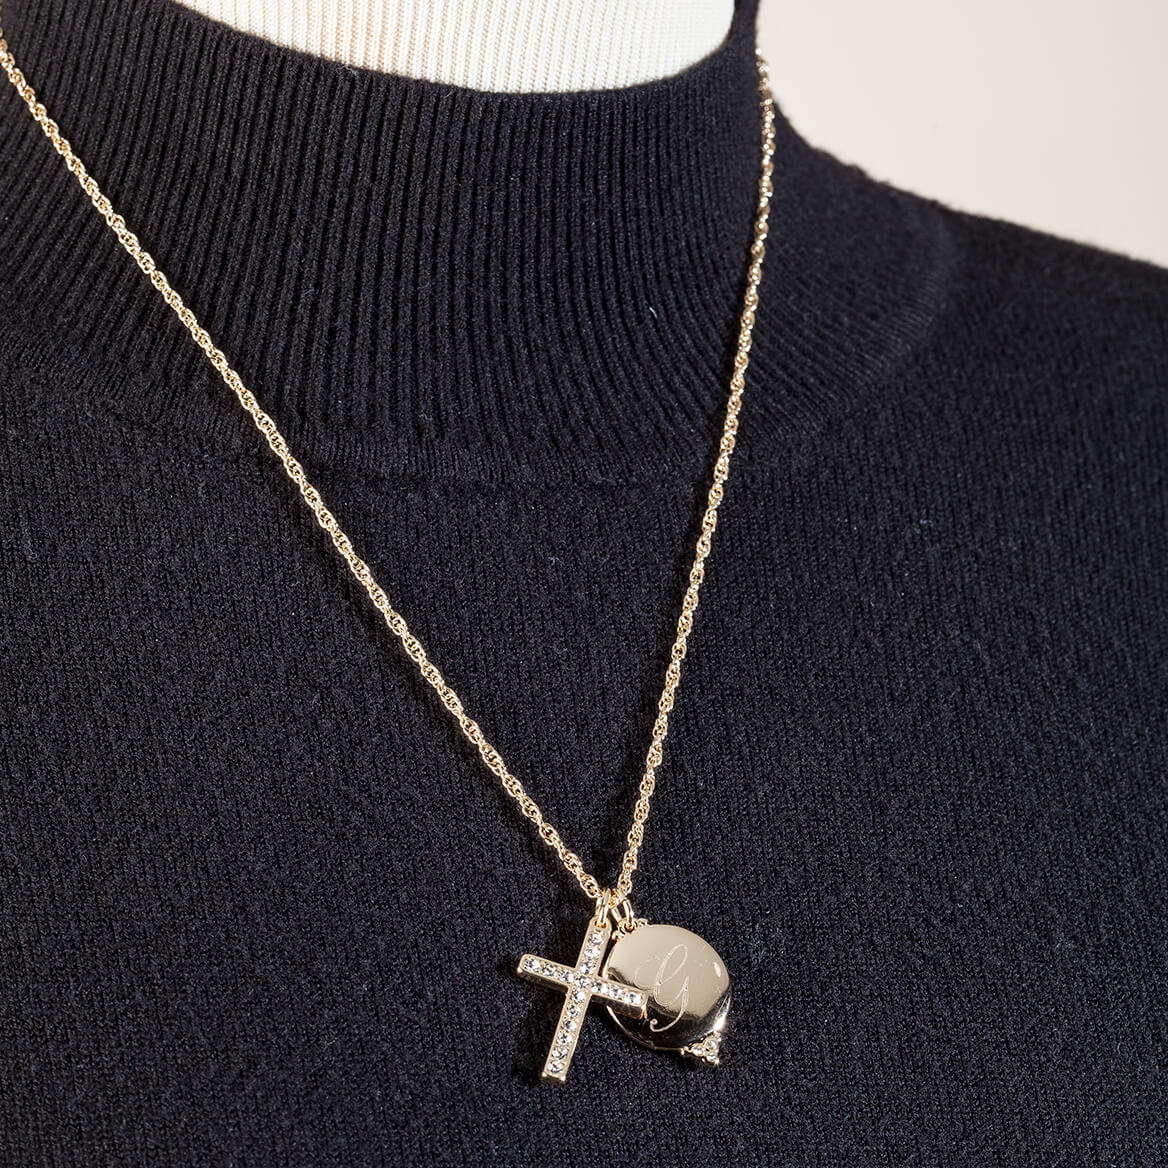 Personalized Pave Crystal Cross Necklace-368489